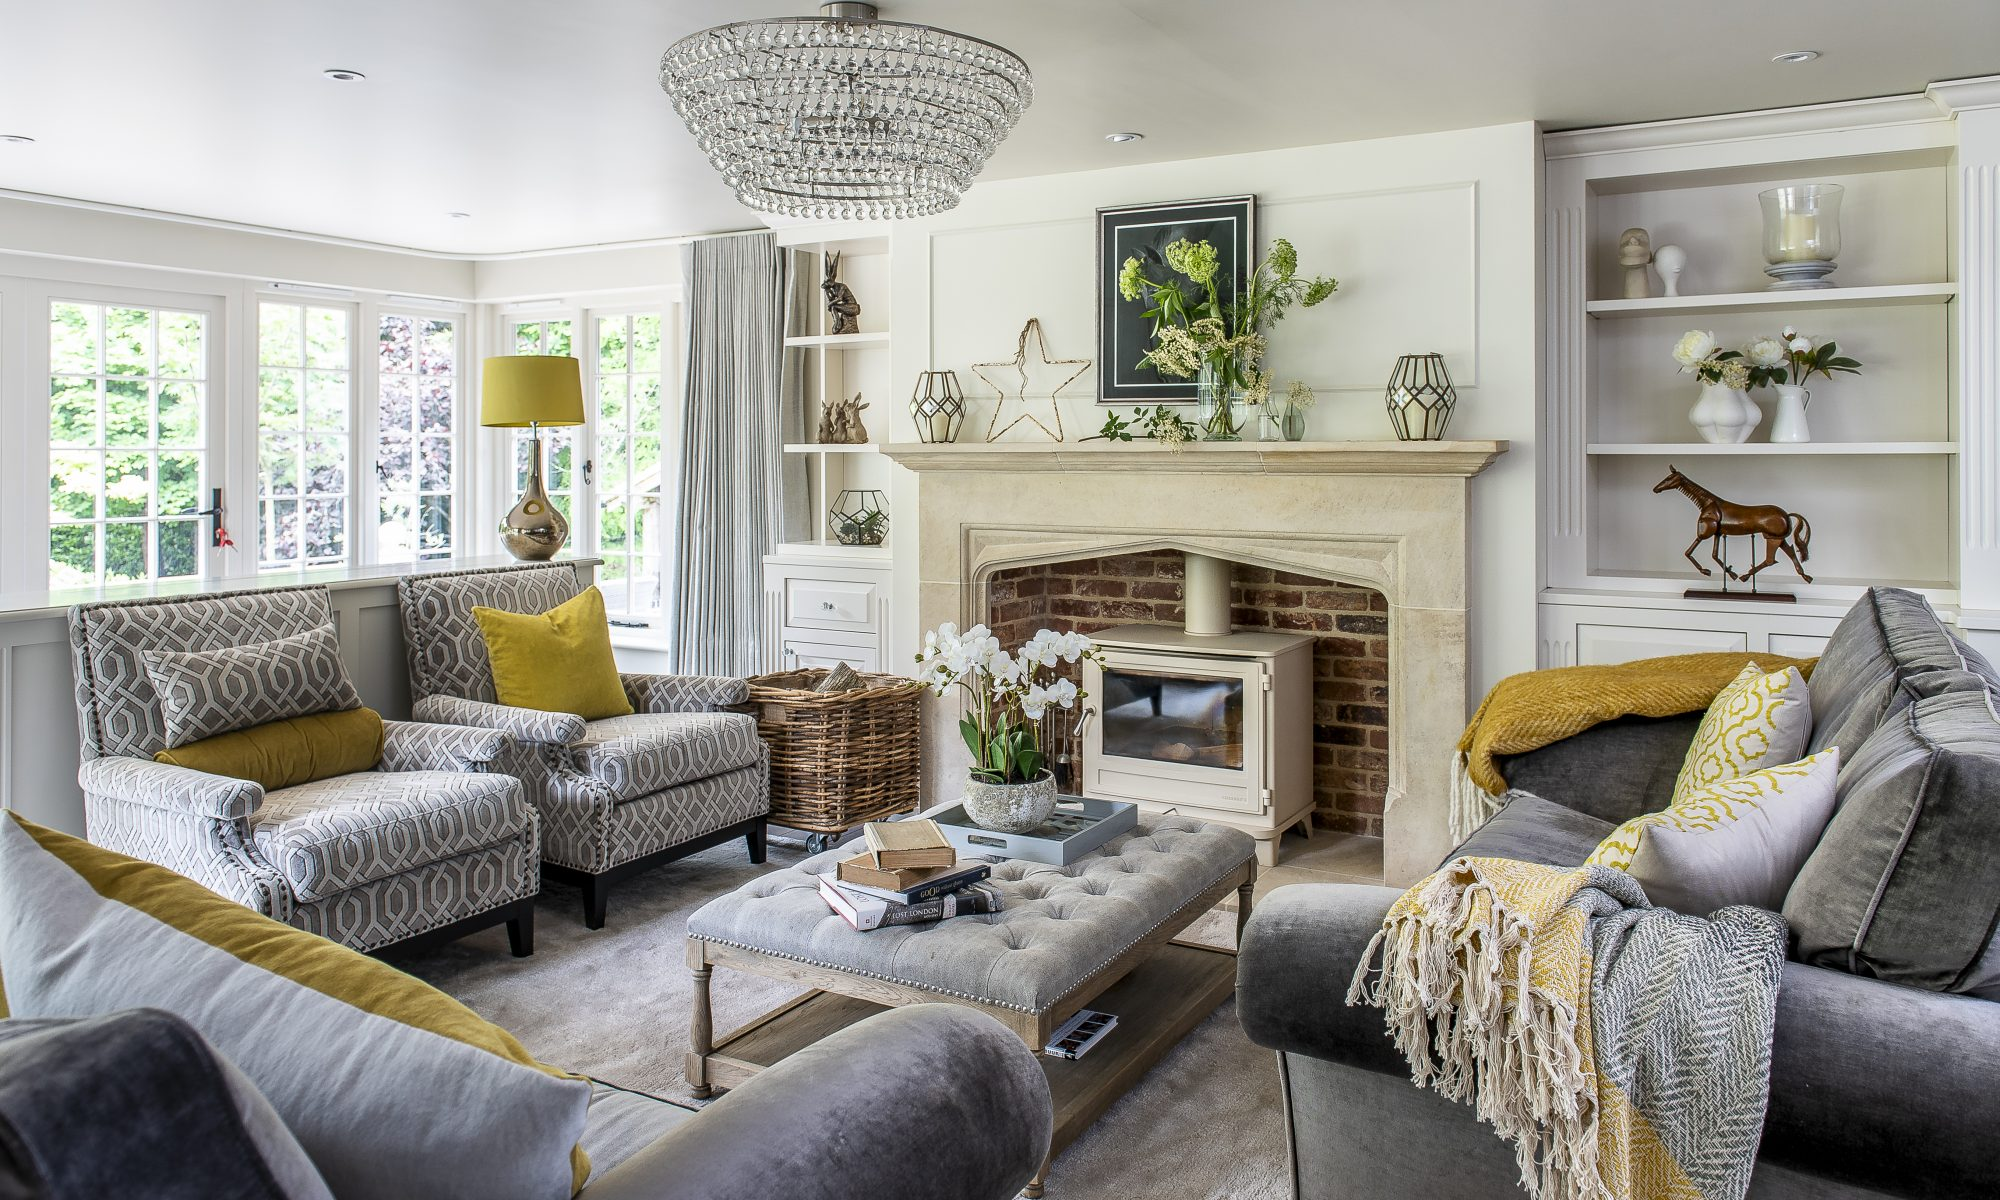 A real fire was top of Rafe's list for establishing that basic sense of contentment and family wellbeing. They chose The Fireplace Company in Crowborough to supply and fit all the fireplaces and wood burning stoves.